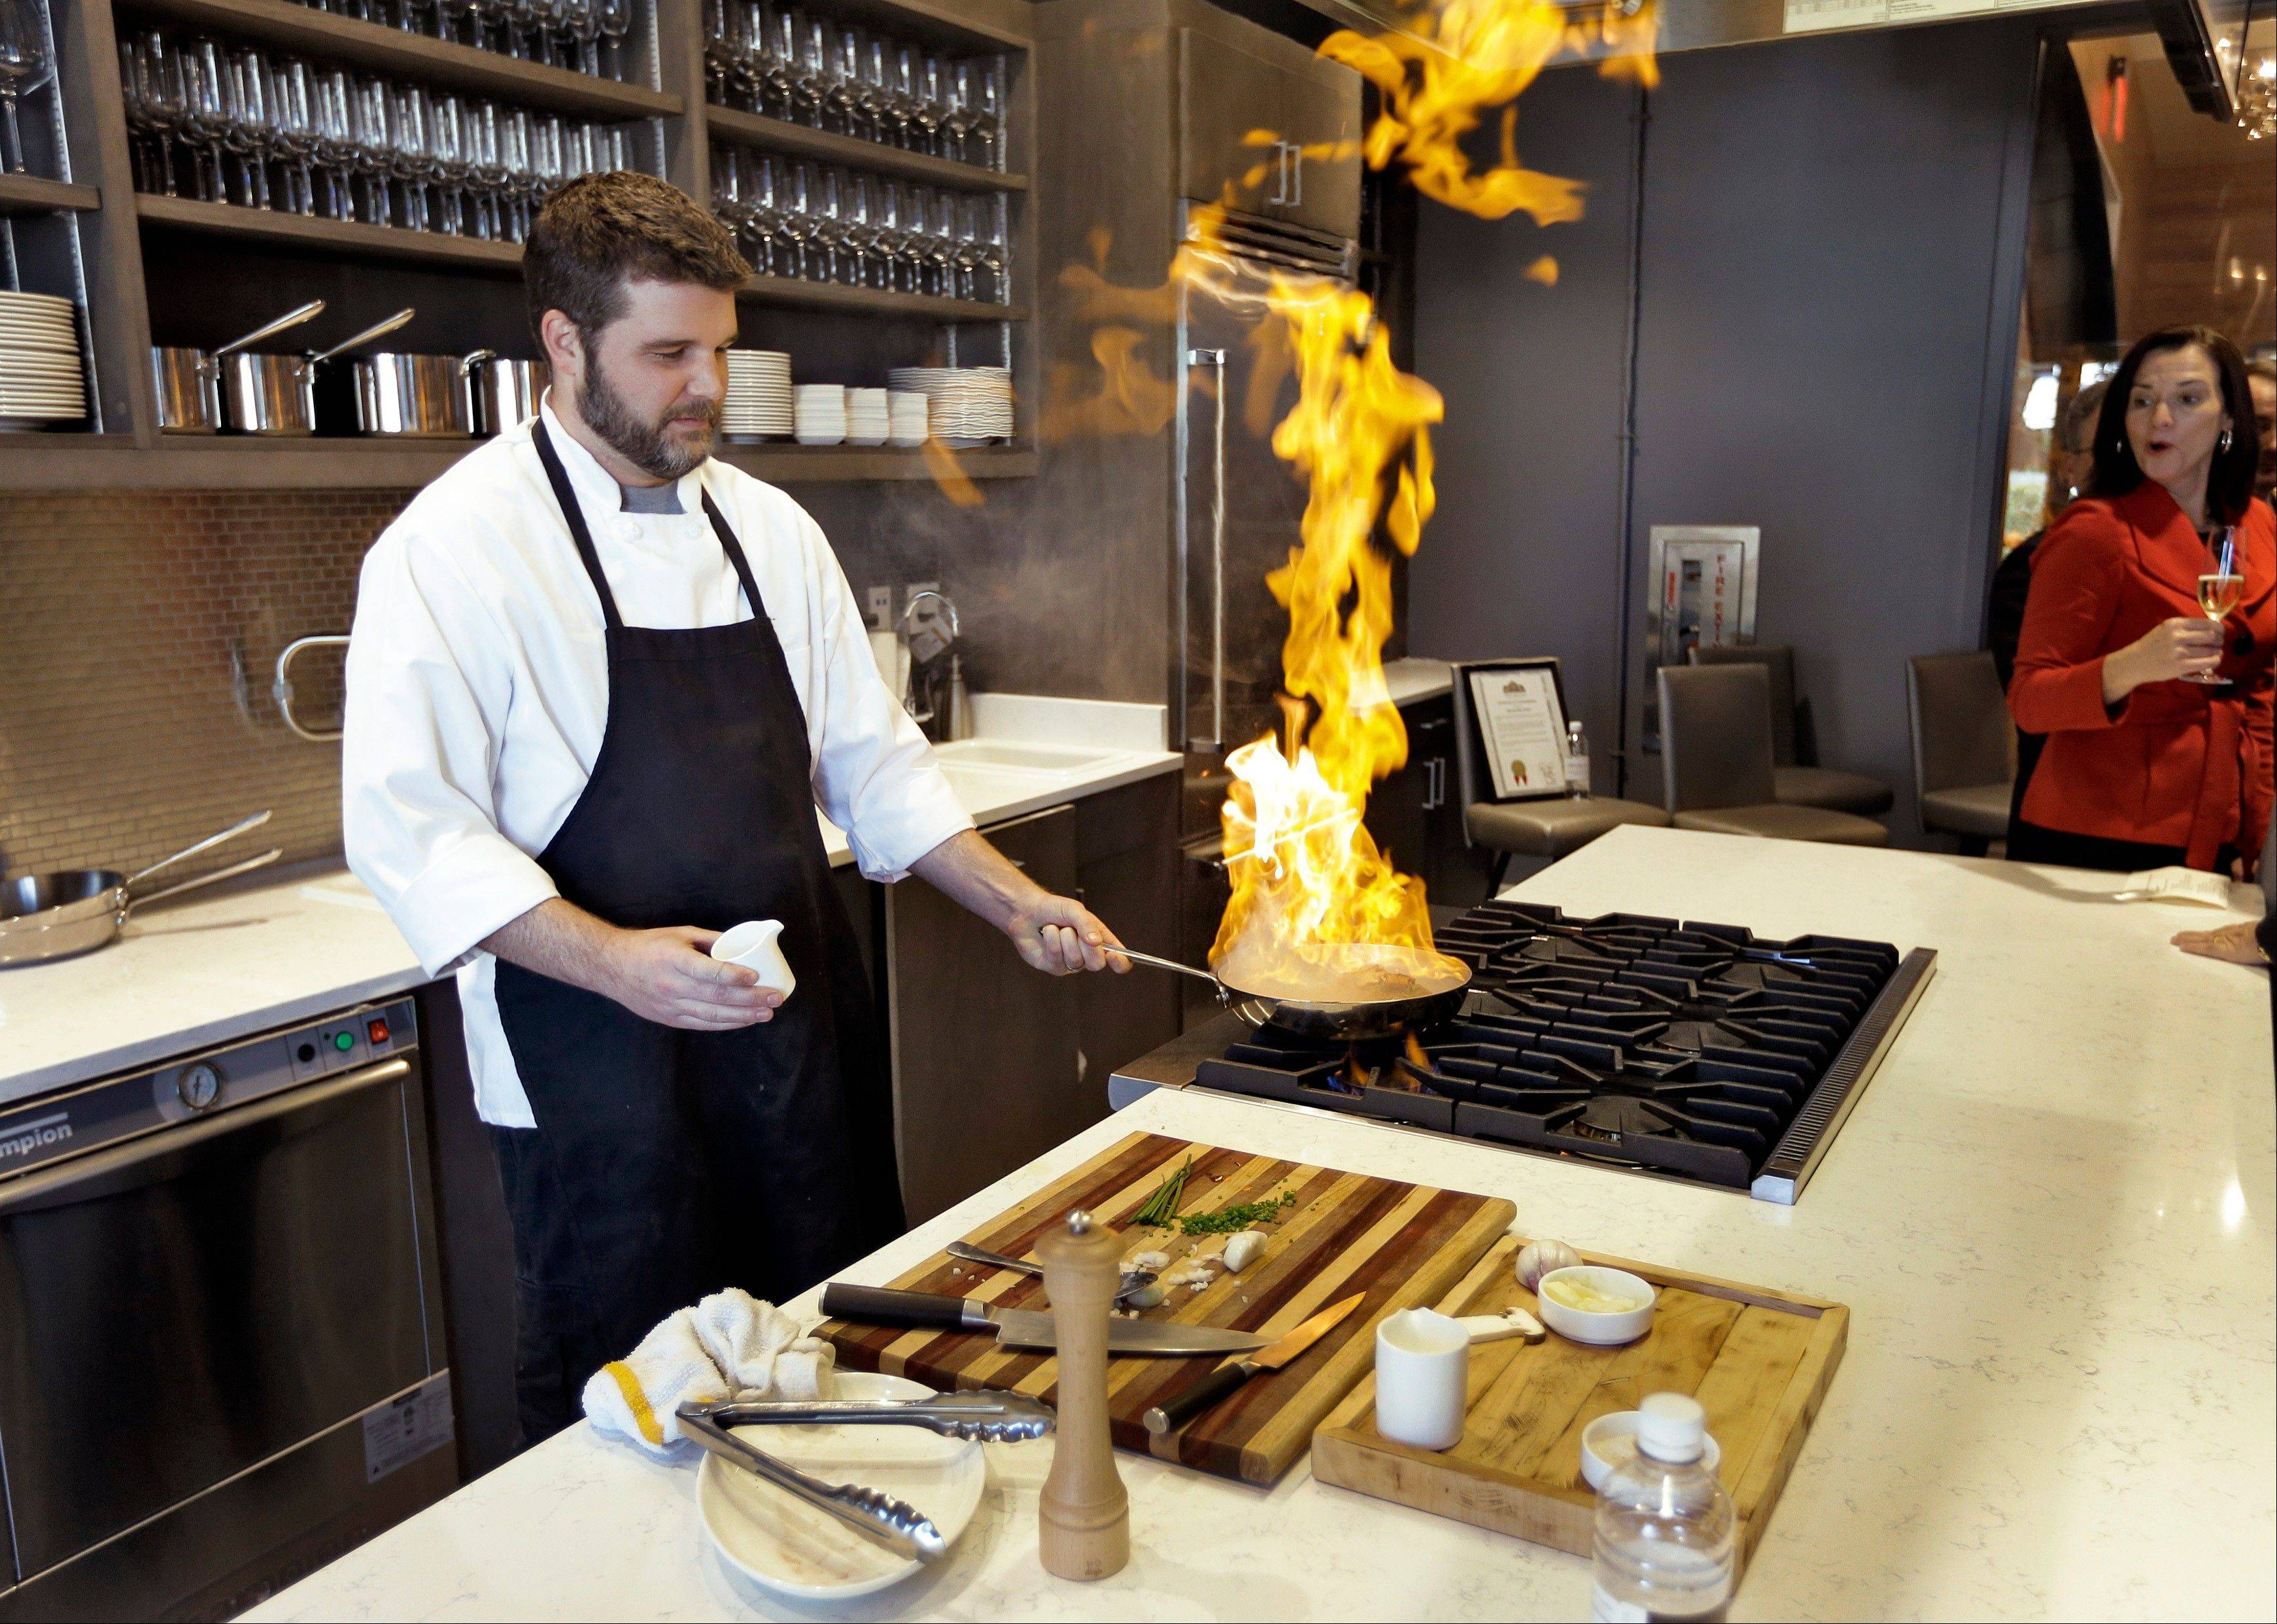 Executive chef Chad Johnson cooks a steak during a tour of the new Epicurean Hotel in Tampa, Fla. Tampa's newest hotel is focused on food, with a restaurant, bakery, culinary theater, wine store and cooking classes on-site.